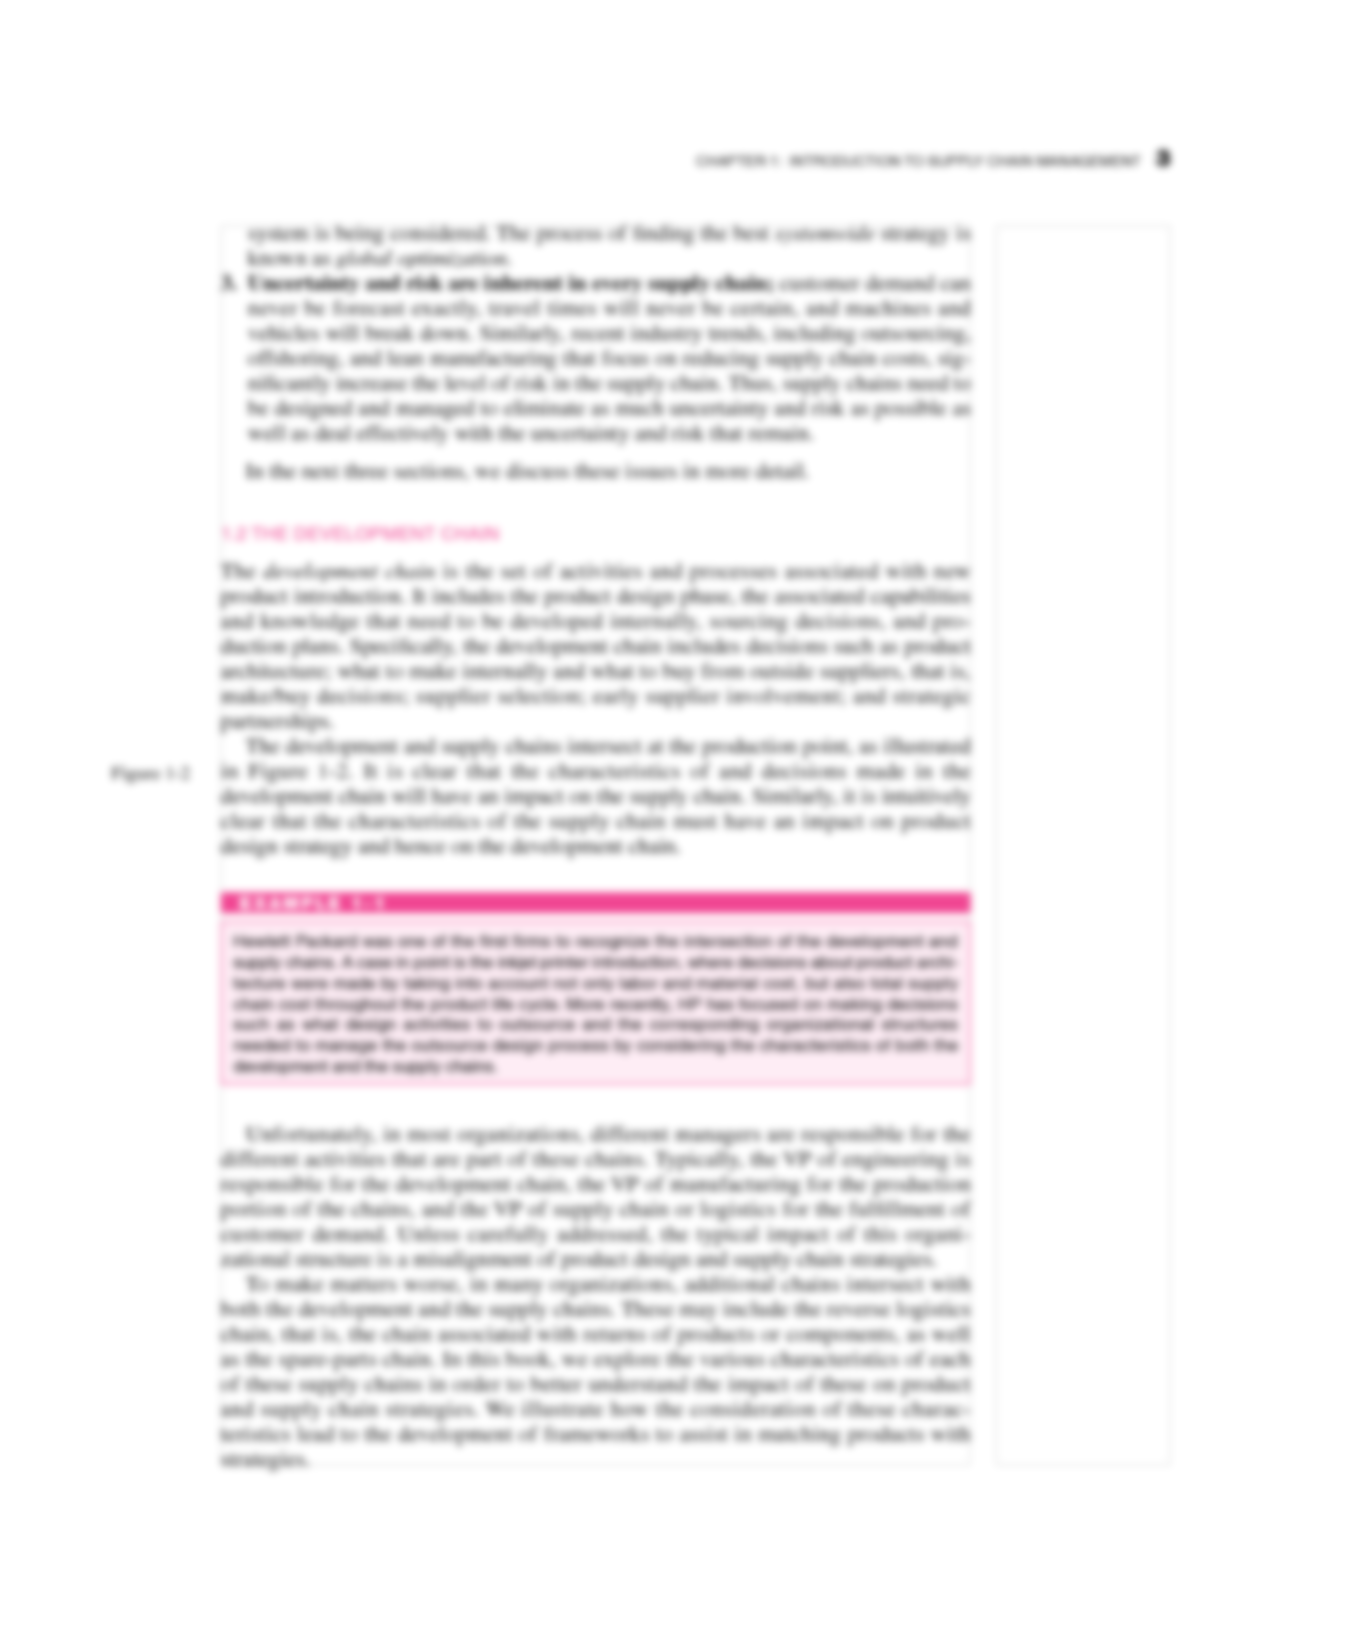 introduction to supply chain management essay To help you get started, here are a few interesting topics that might give you a few good ideas for interesting supply chain management dissertation topics customer tailored logistics  the purpose is to give a description of the supply chain within a system that has great distances between sales units and production.